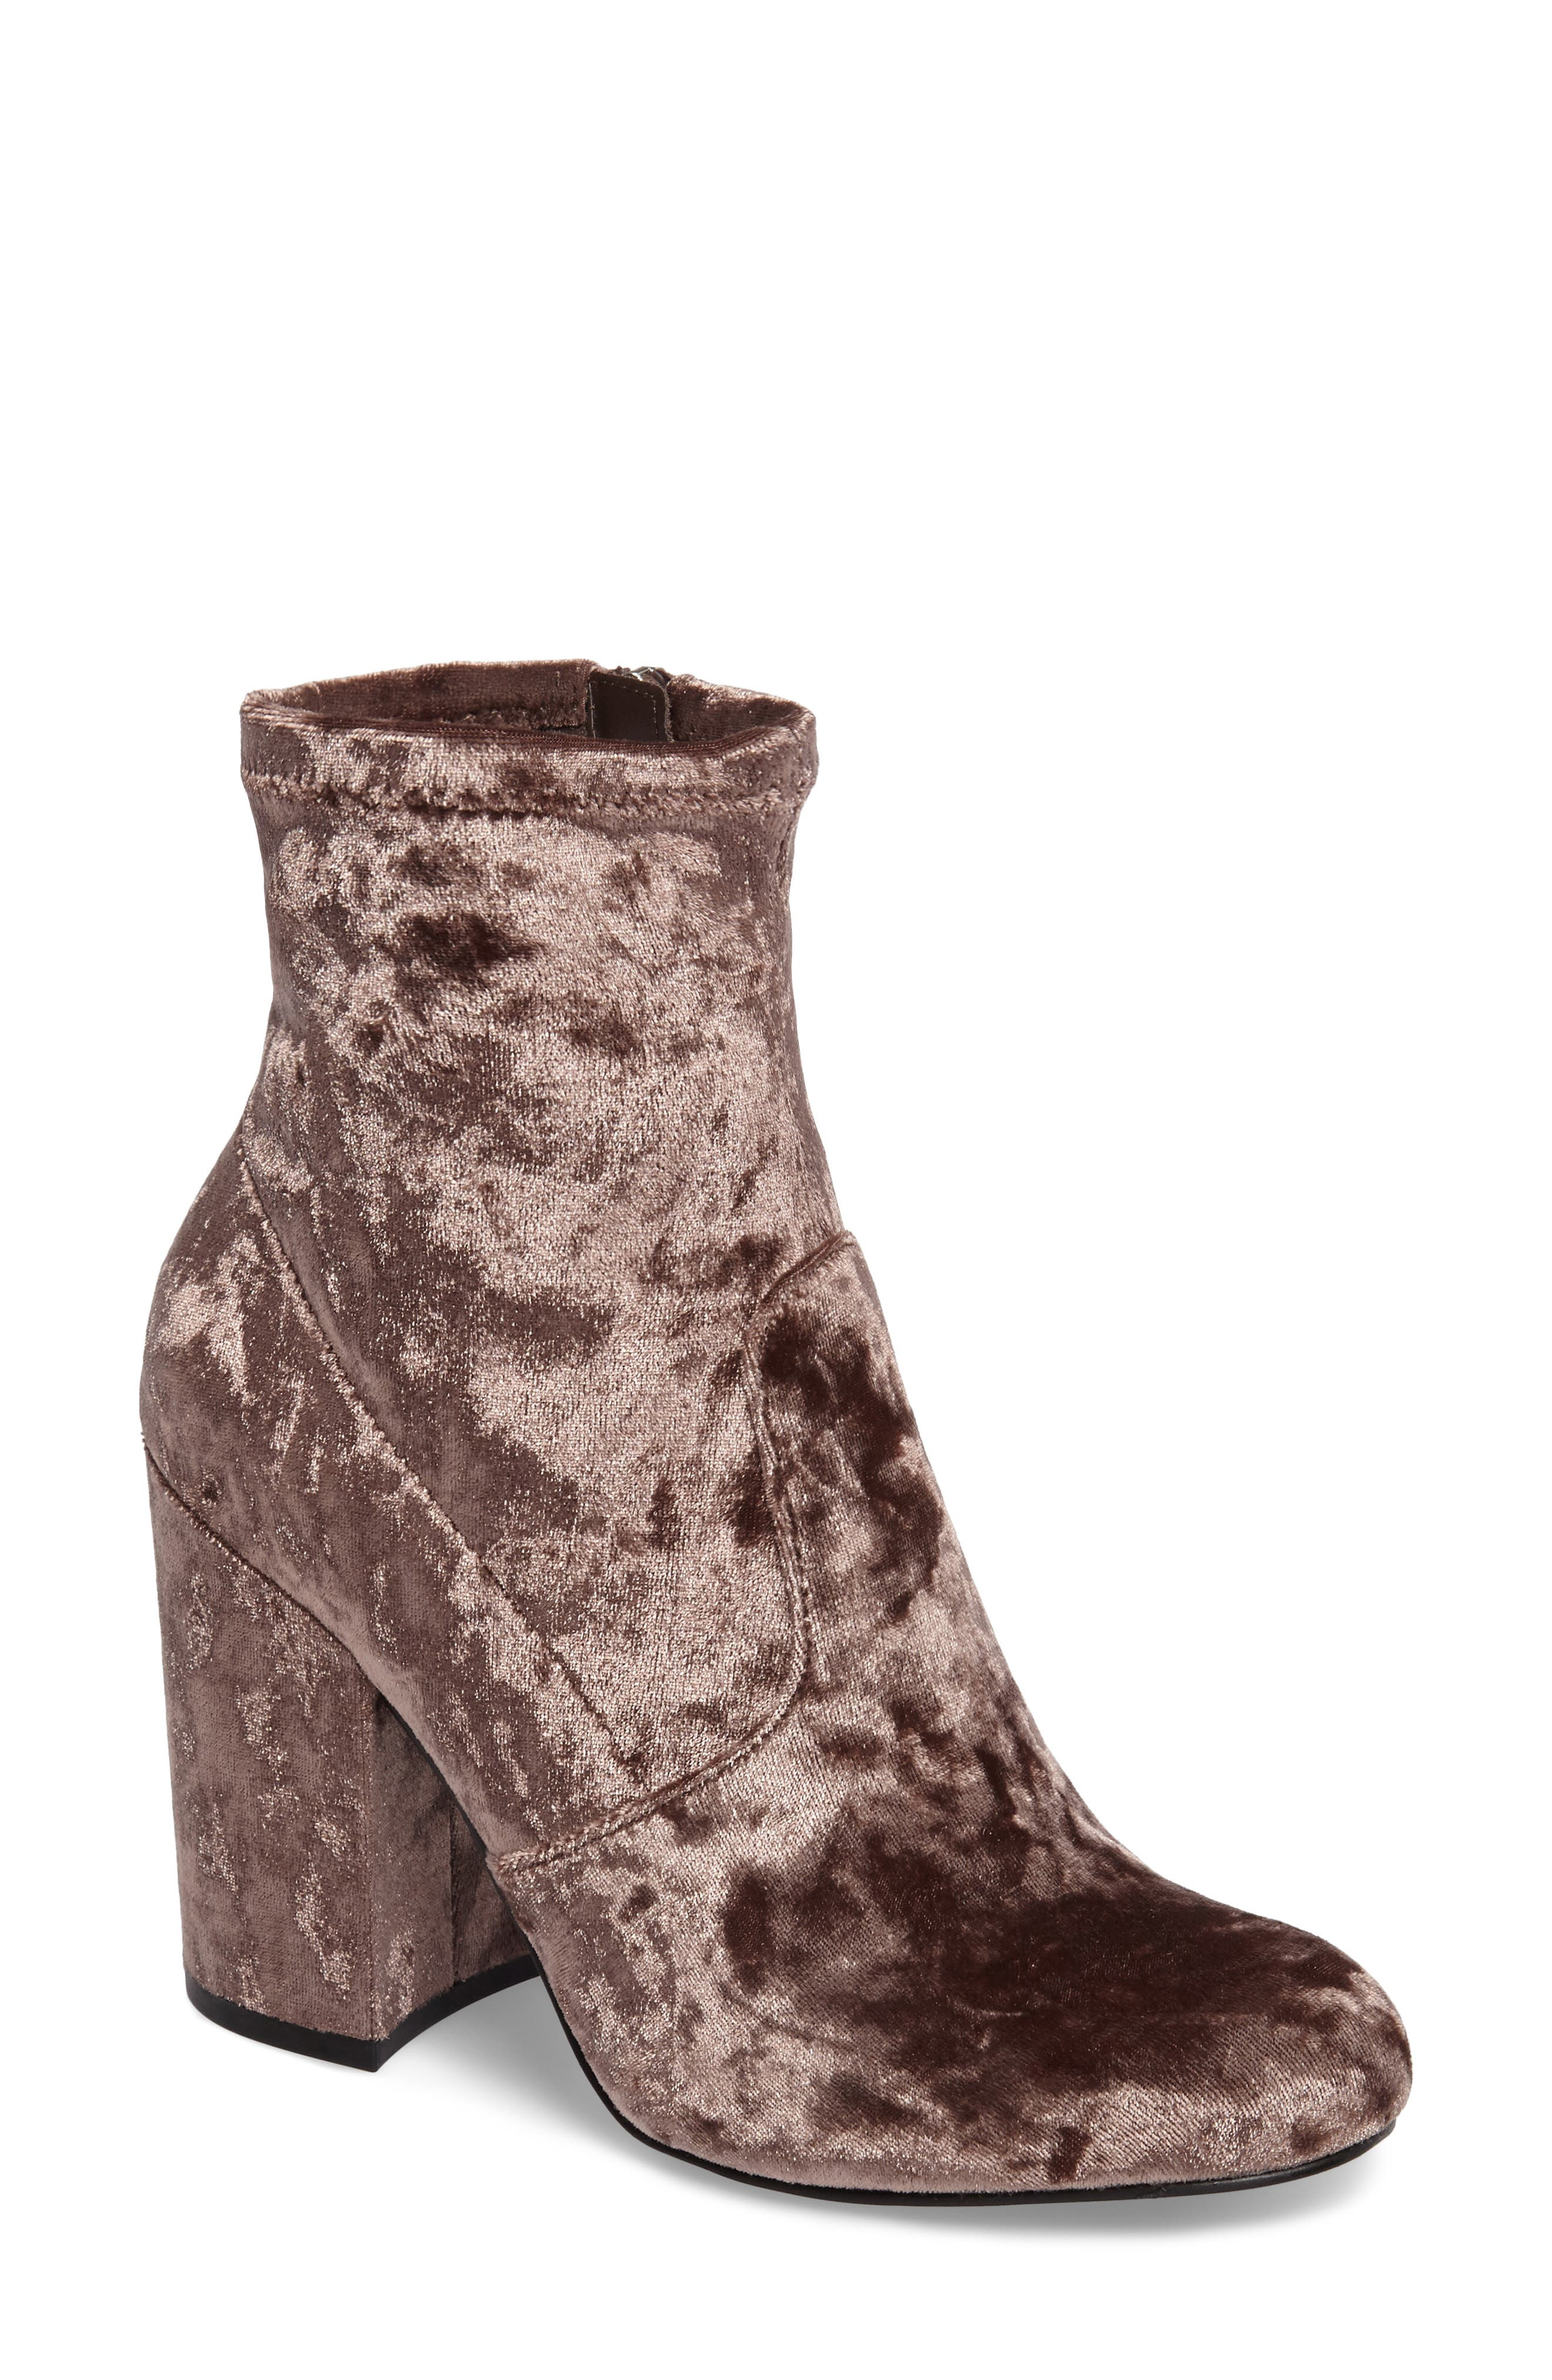 Alternate Image 1 Selected - Steve Madden Gaze Bootie (Women)